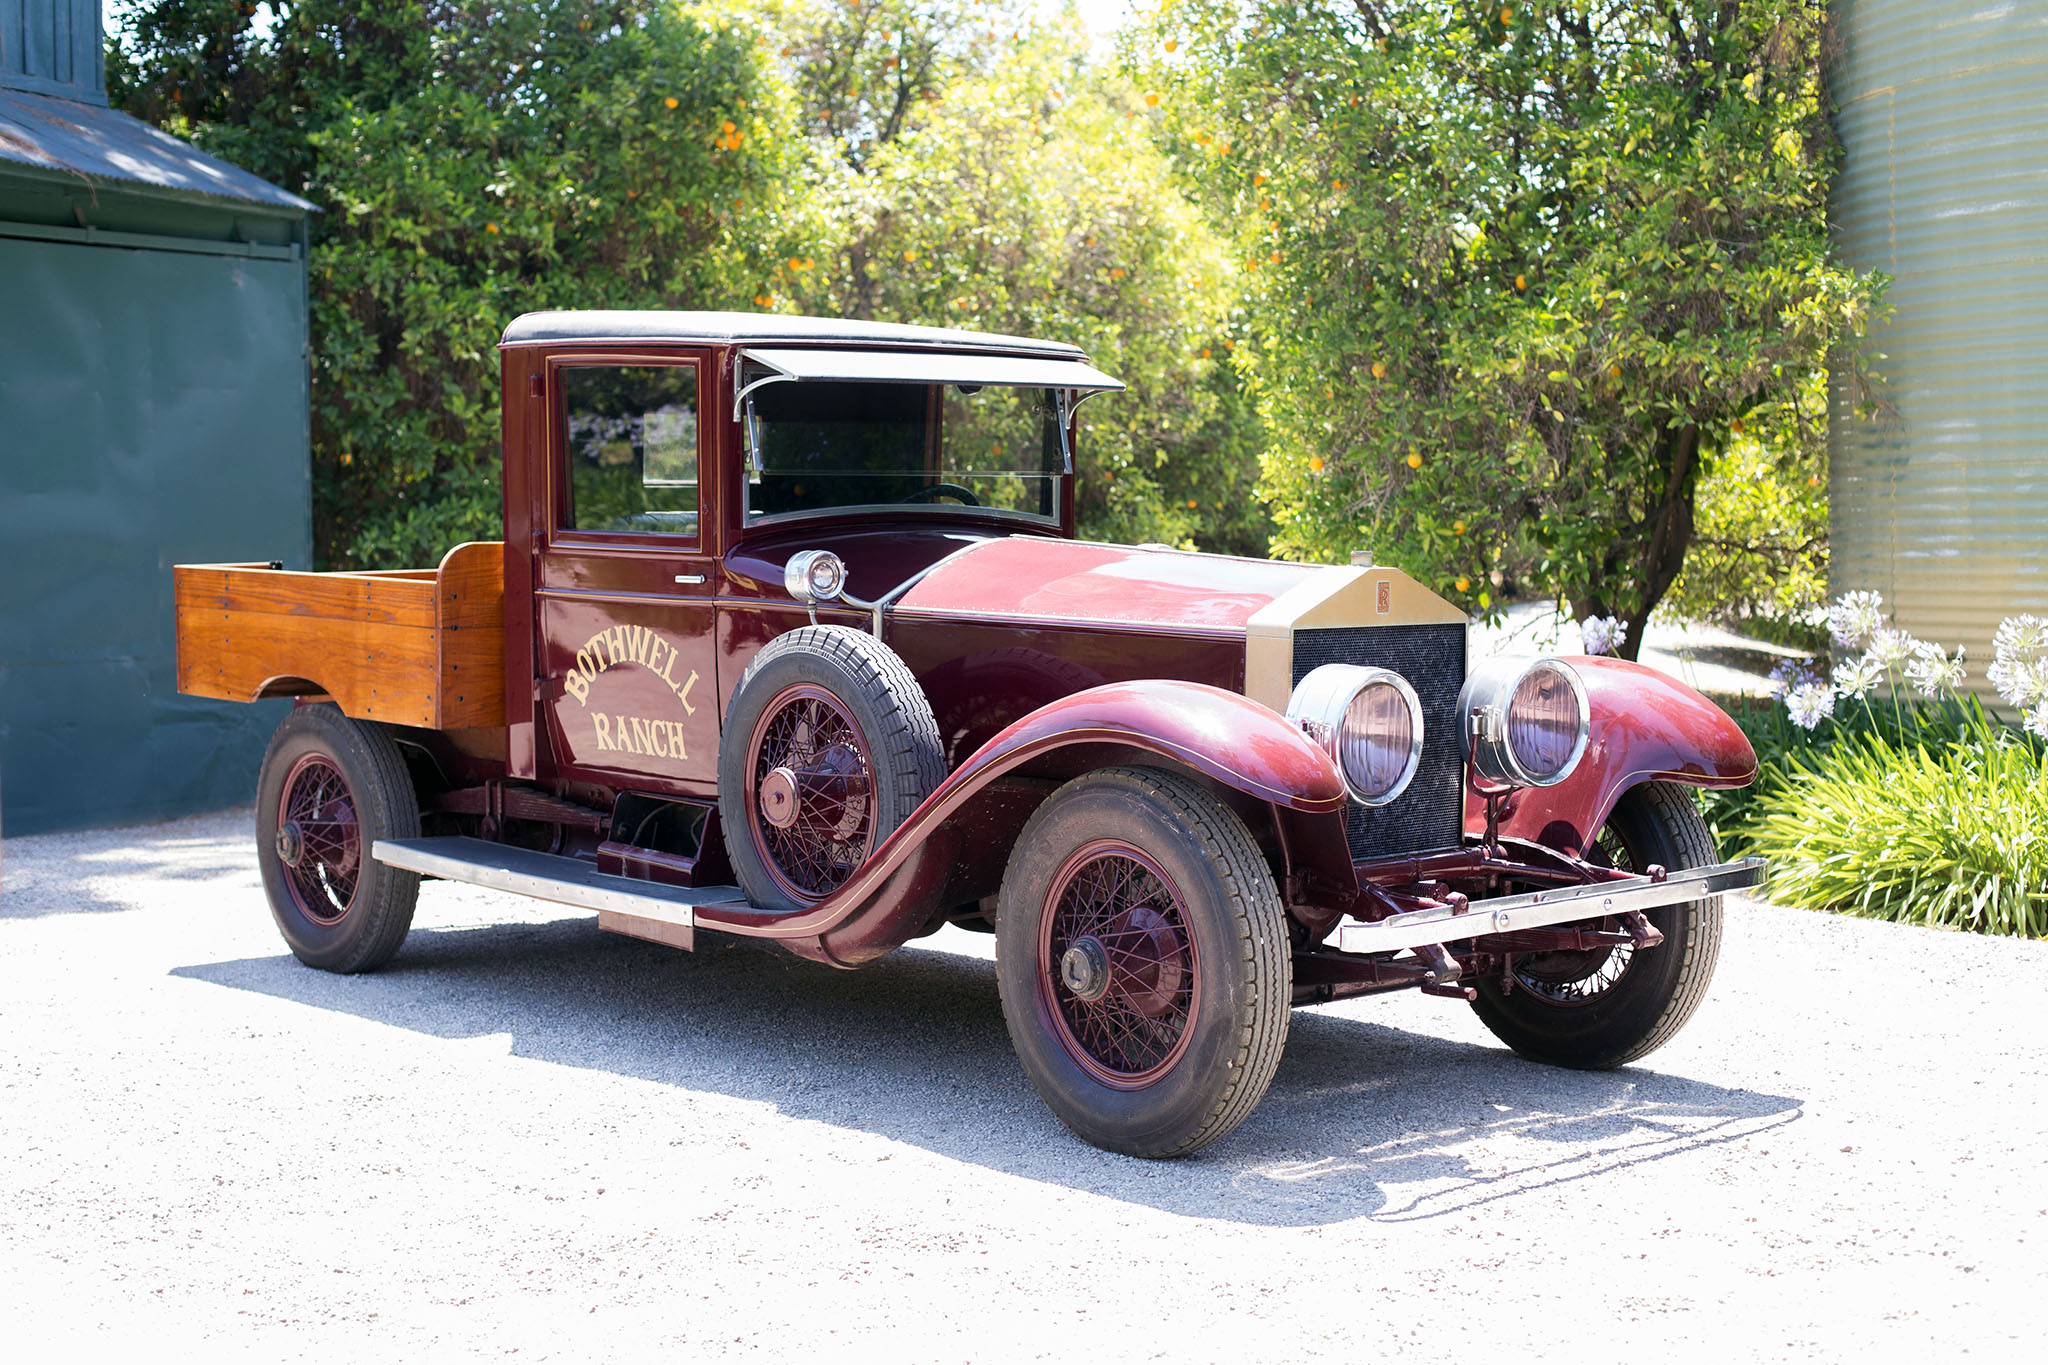 1926 Rolls Royce Pickup Trcuk Bonhams Front Three Quarters